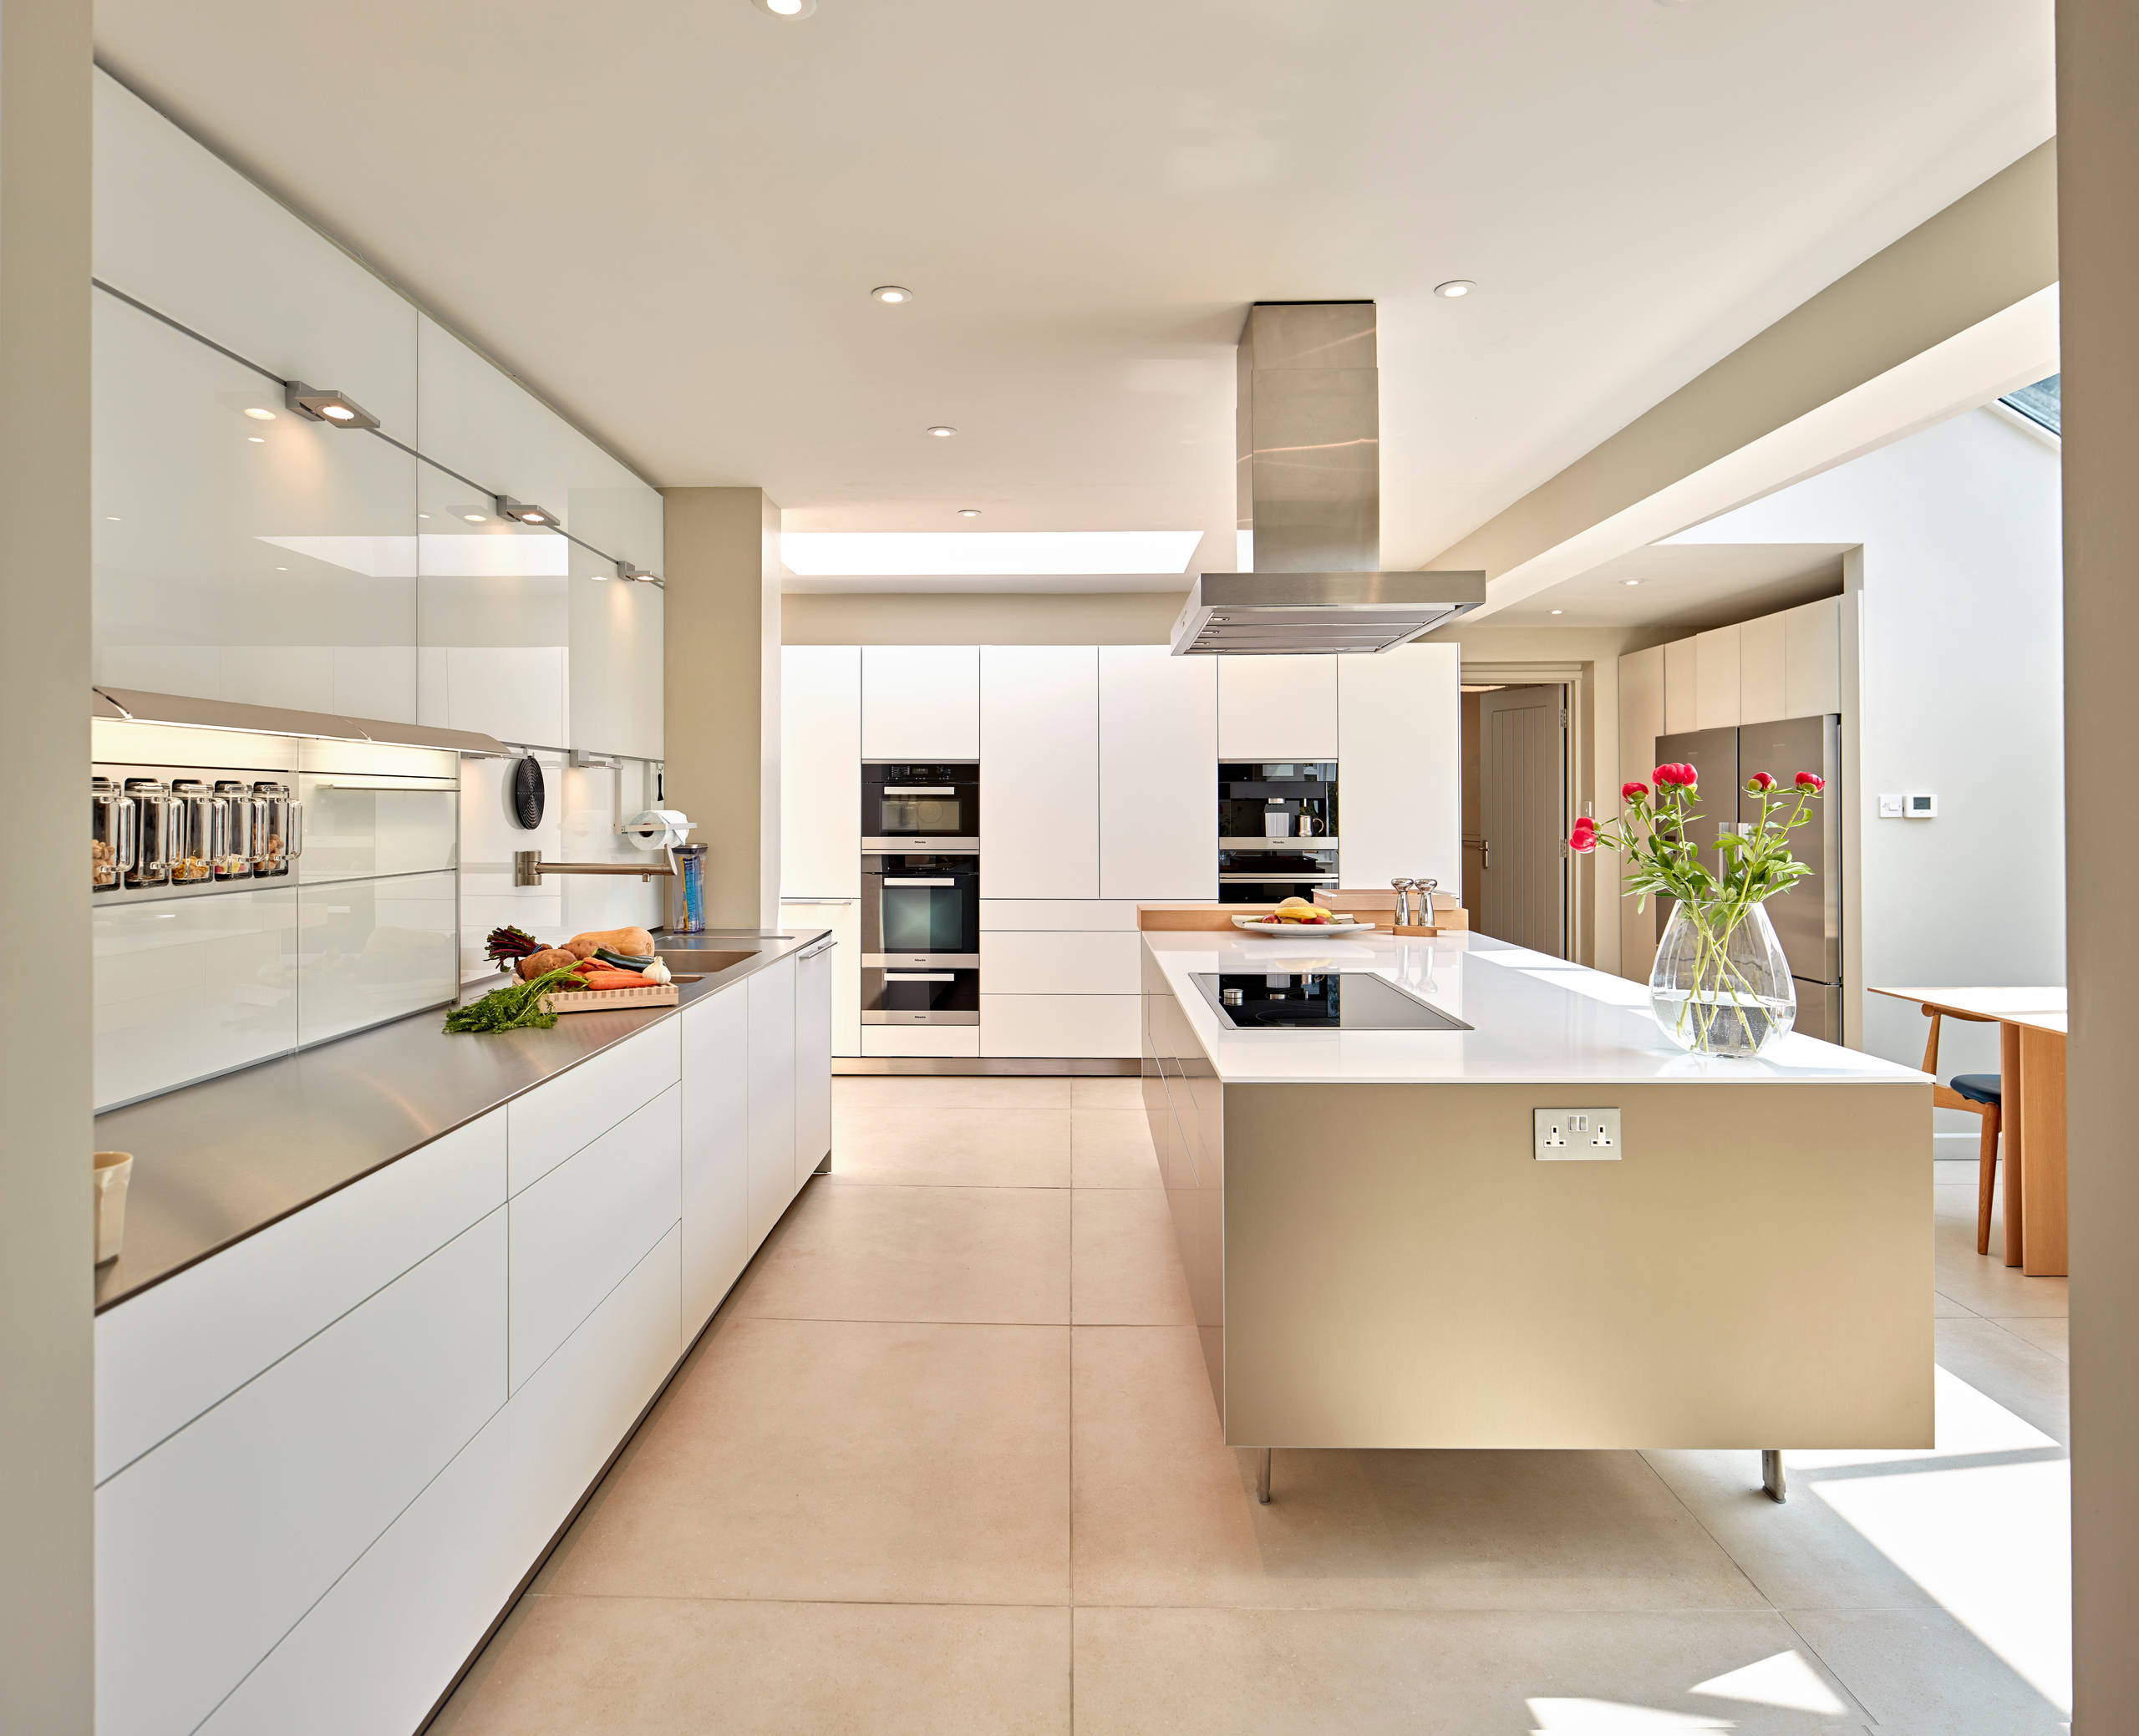 Bulthaup B3 Bulthaup B3 Kitchen- Reflective Metals And Light Wood - Contemporary - Kitchen - Hampshire - By Hobsons Choice | Houzz